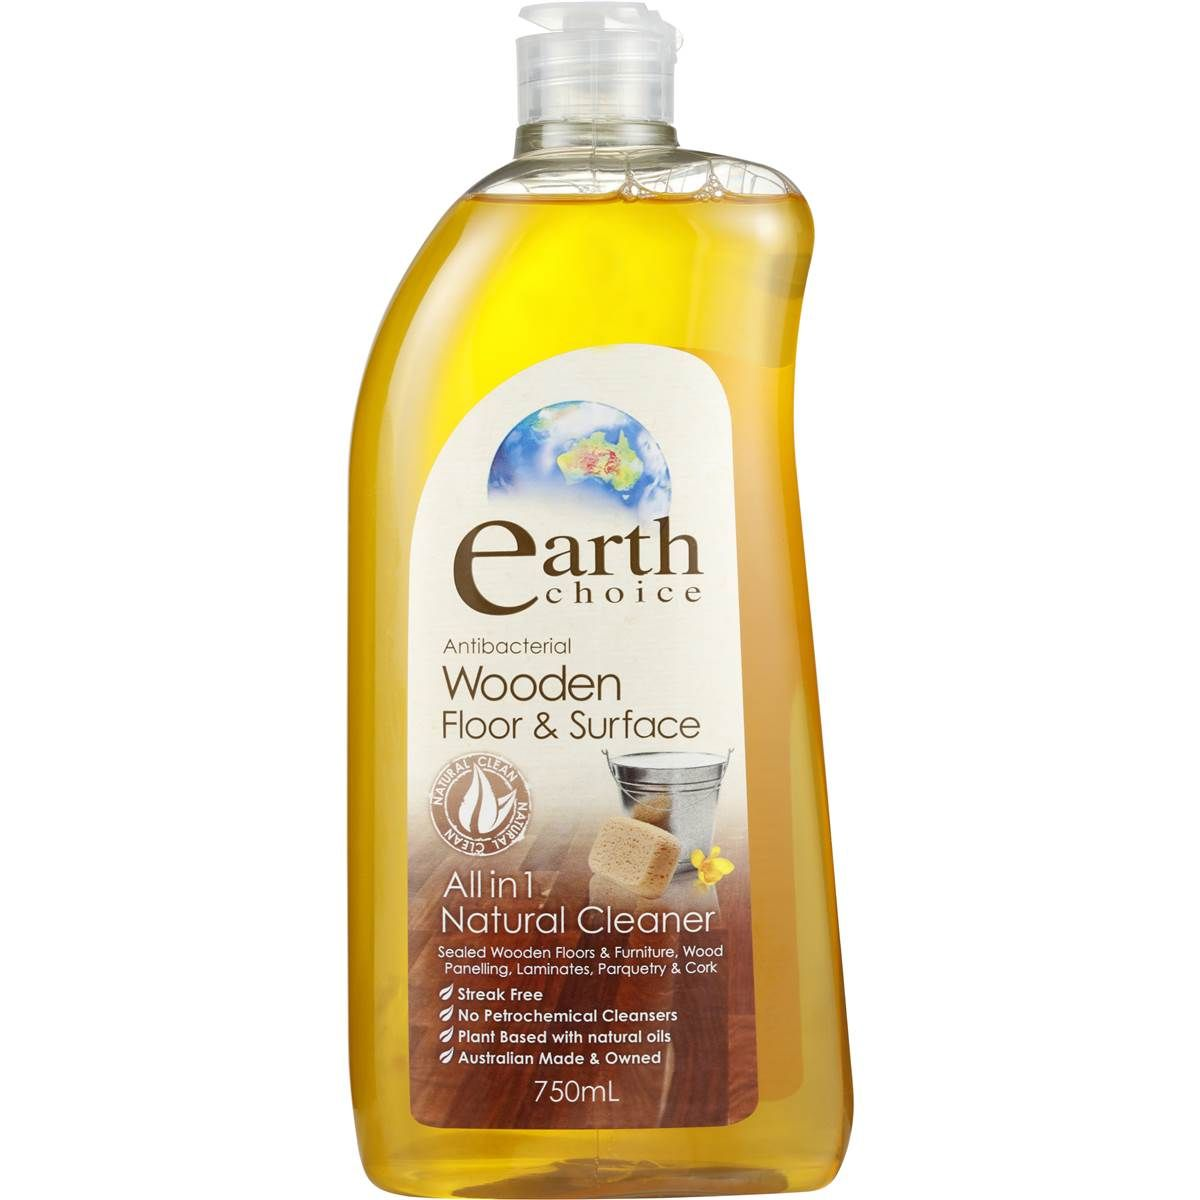 Earth Choice Floor Cleaner Wooden Surface 750ml | Laundry | Choices